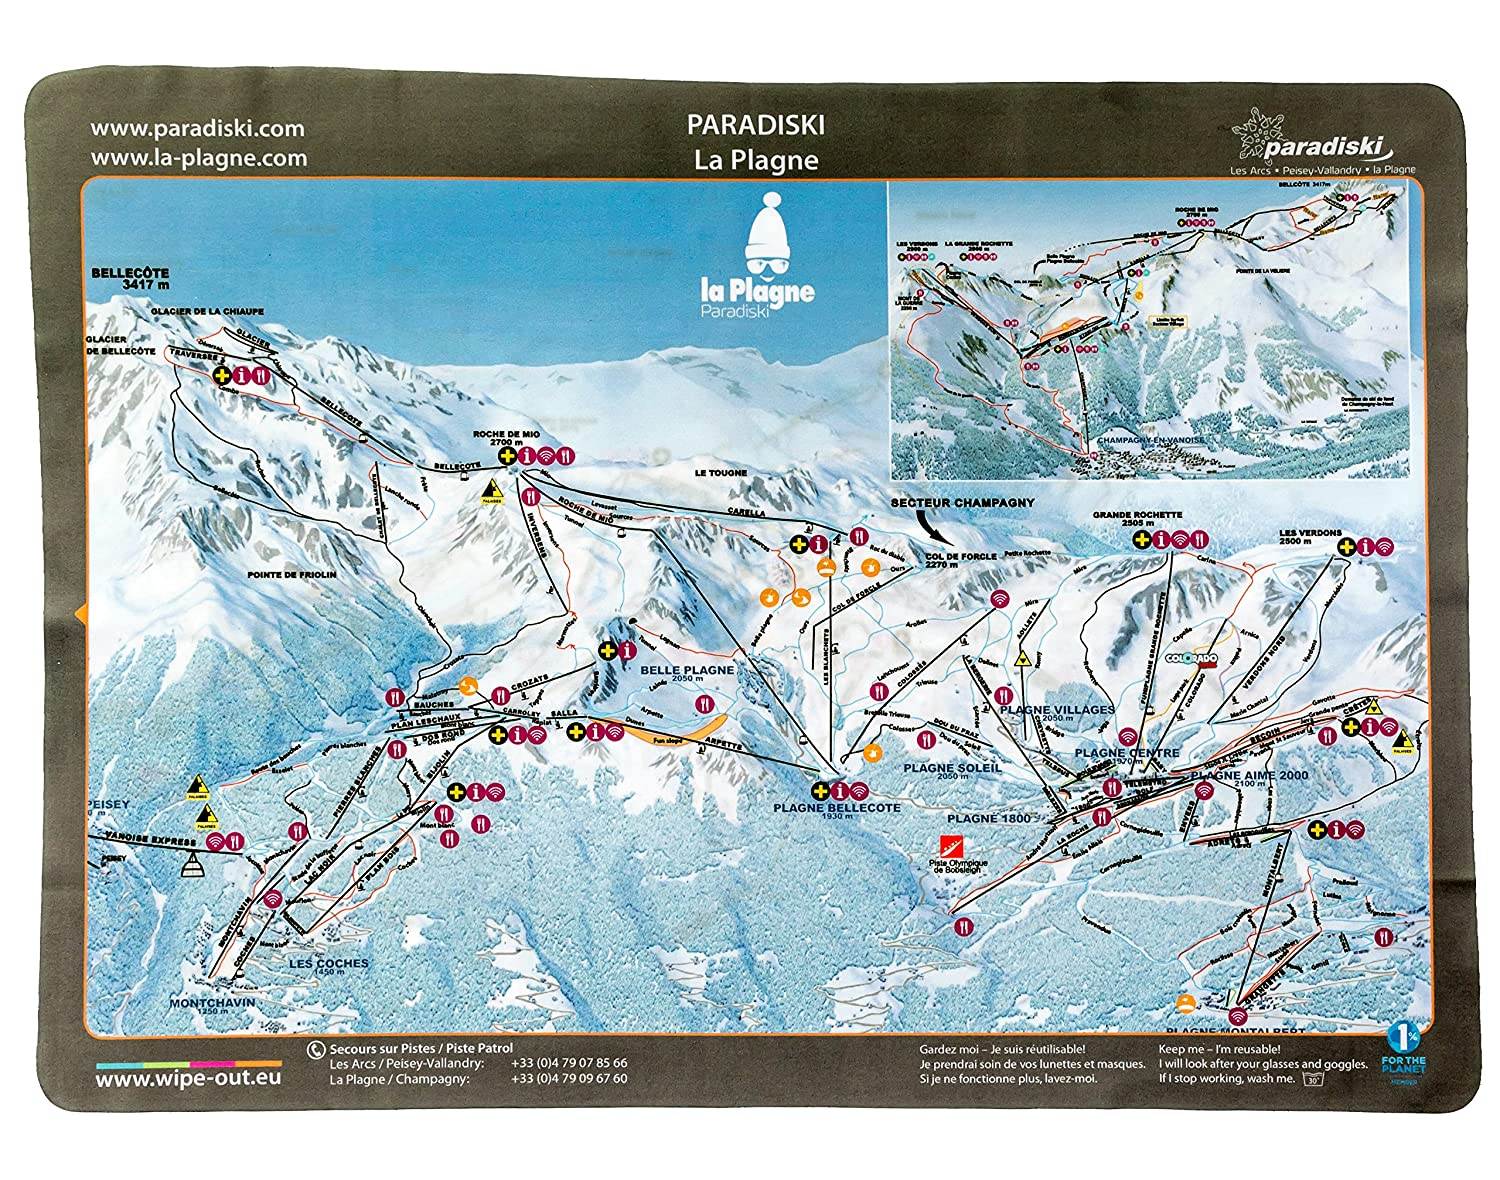 Wipeout Paradiski Piste Map Lens Cloth Amazoncouk Sports Outdoors